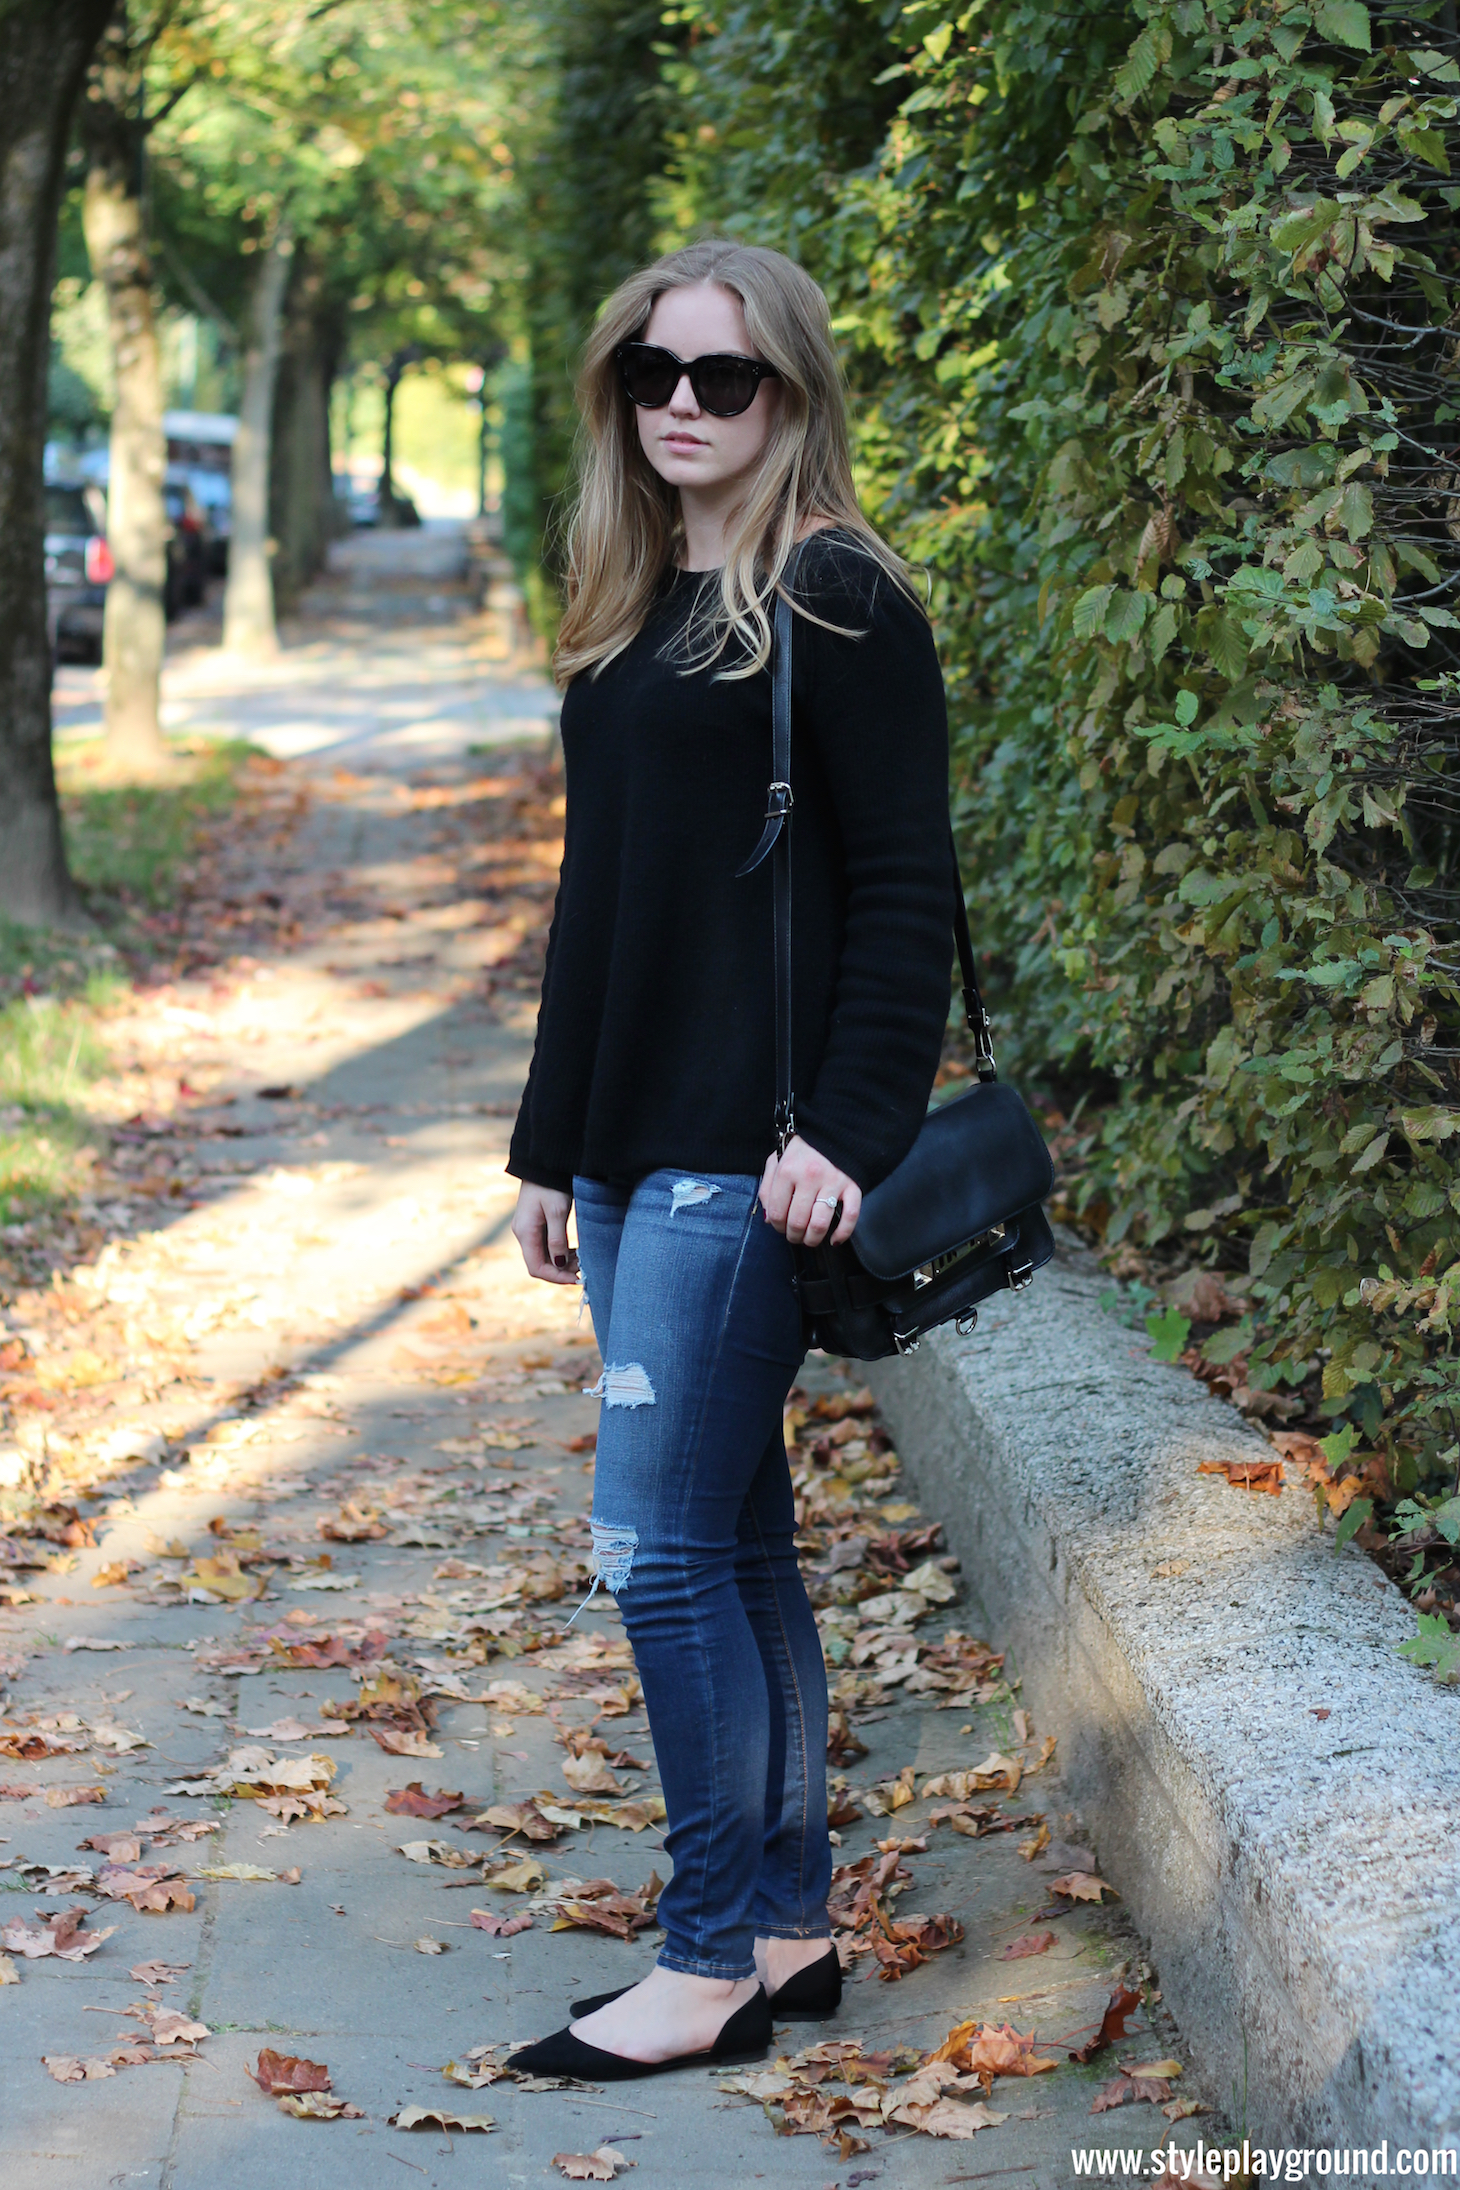 Axelle Blanpain of Style playground is wearing a Bash sweater, American Eagle ripped leggings, Zara shoes, Proenza Schouler PS11 bag & Celine Audrey sunglasses